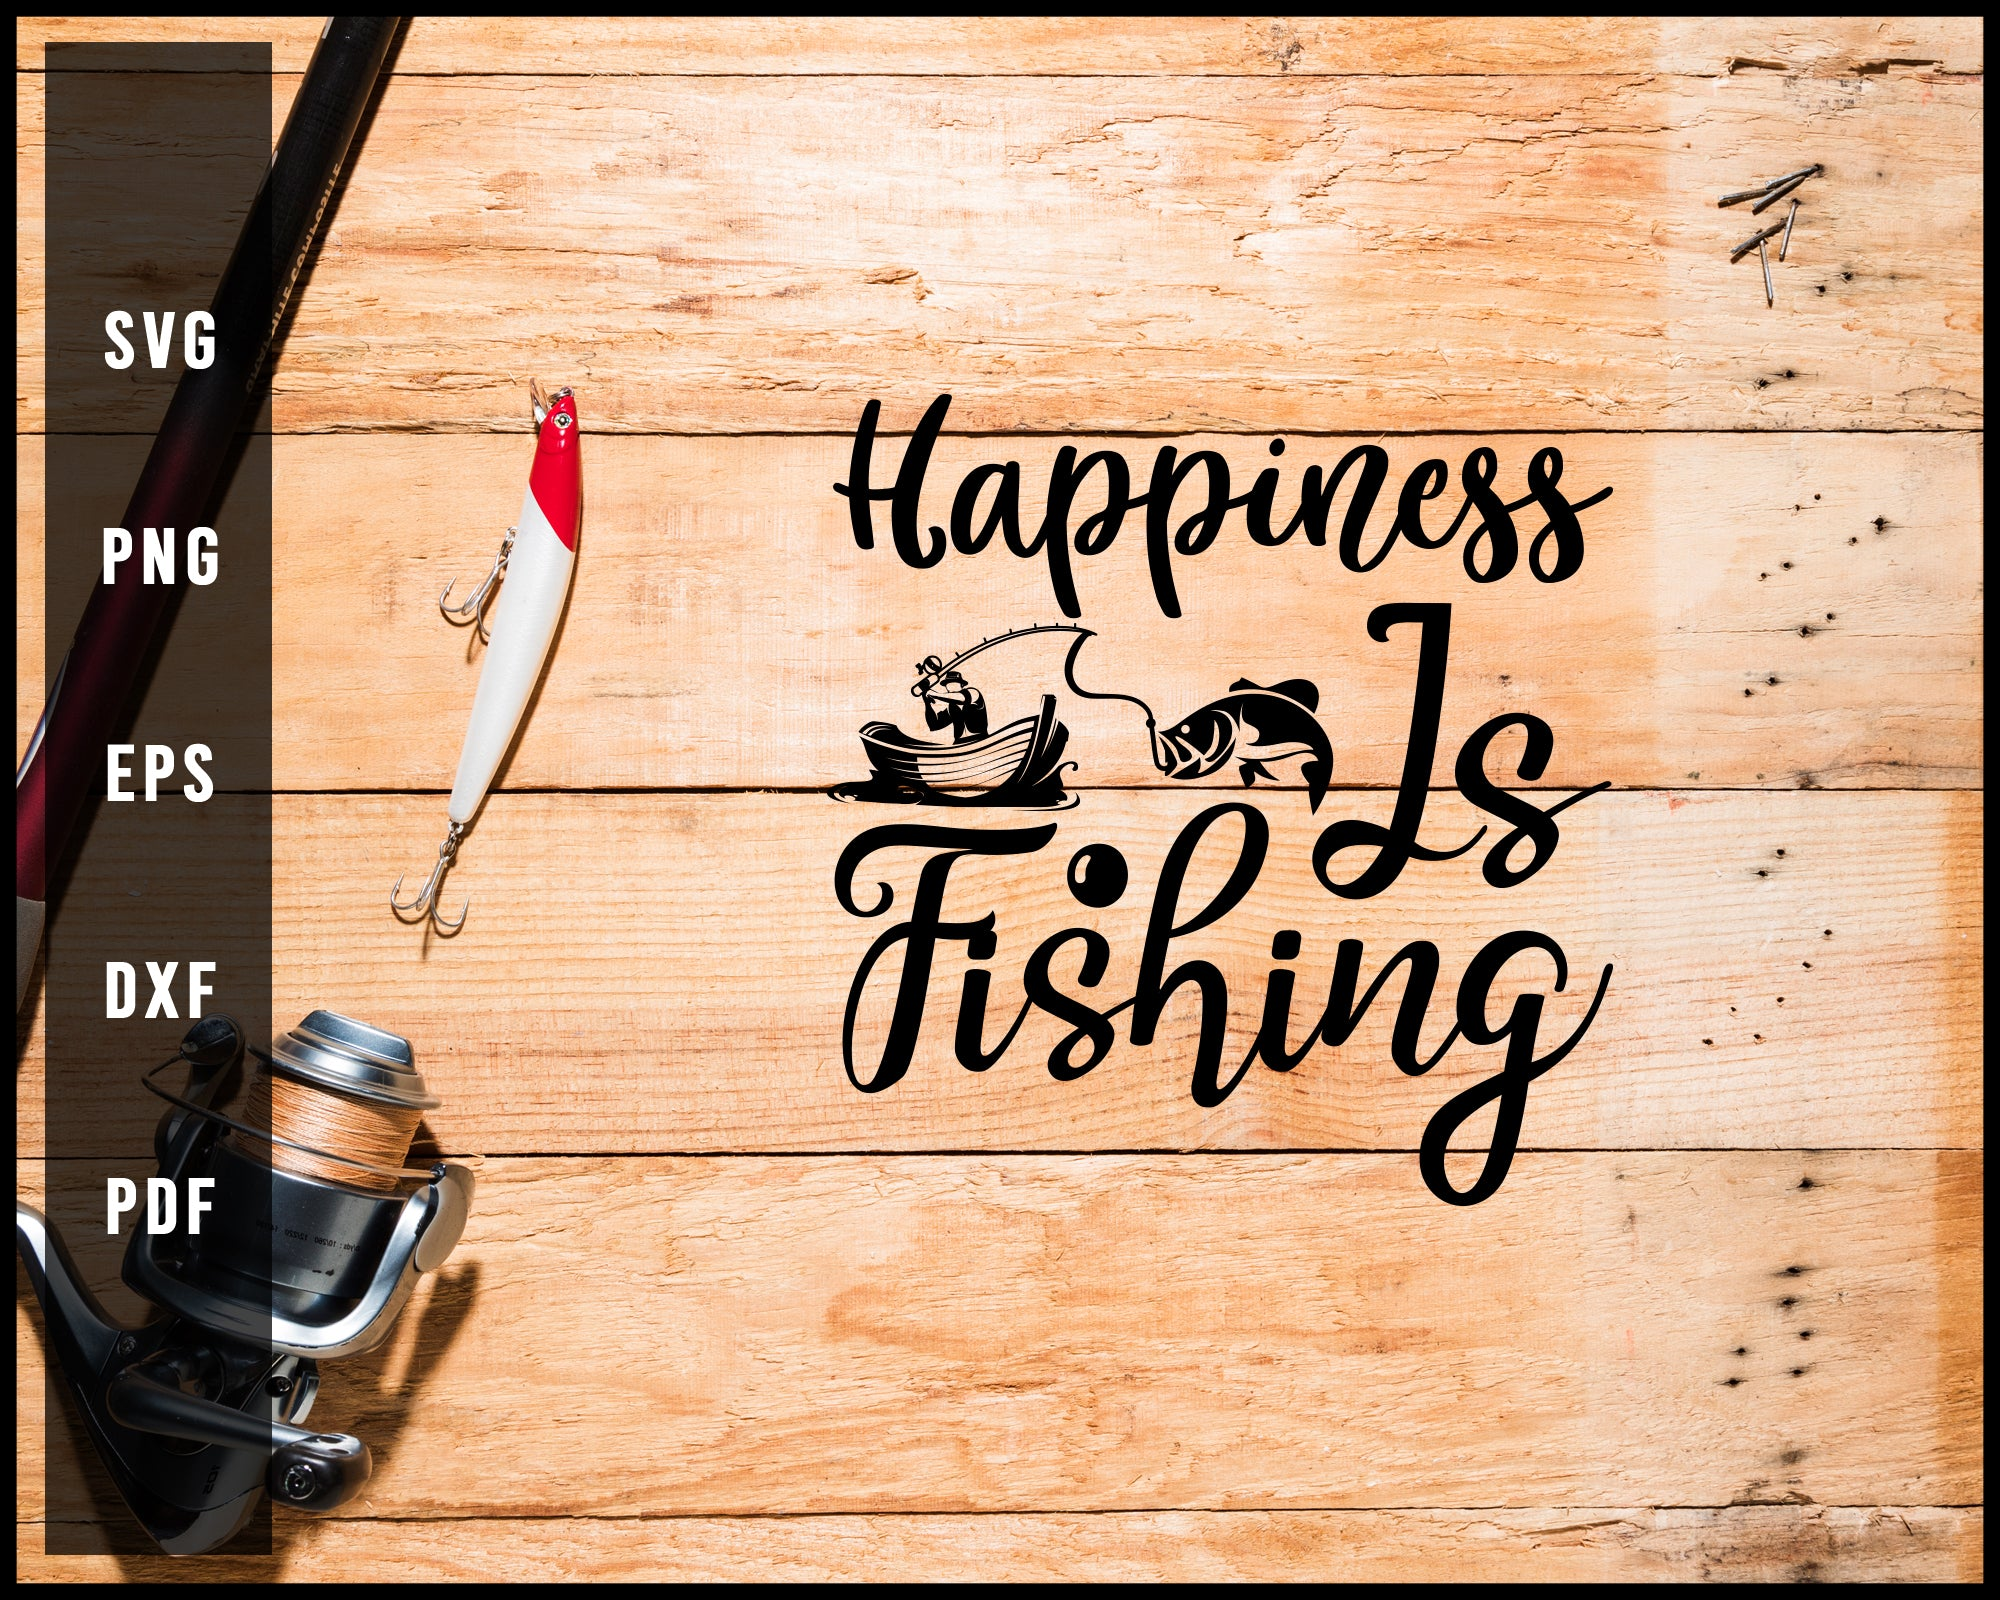 Happiness Is Fishing svg png Silhouette Designs For Cricut And Printable Files